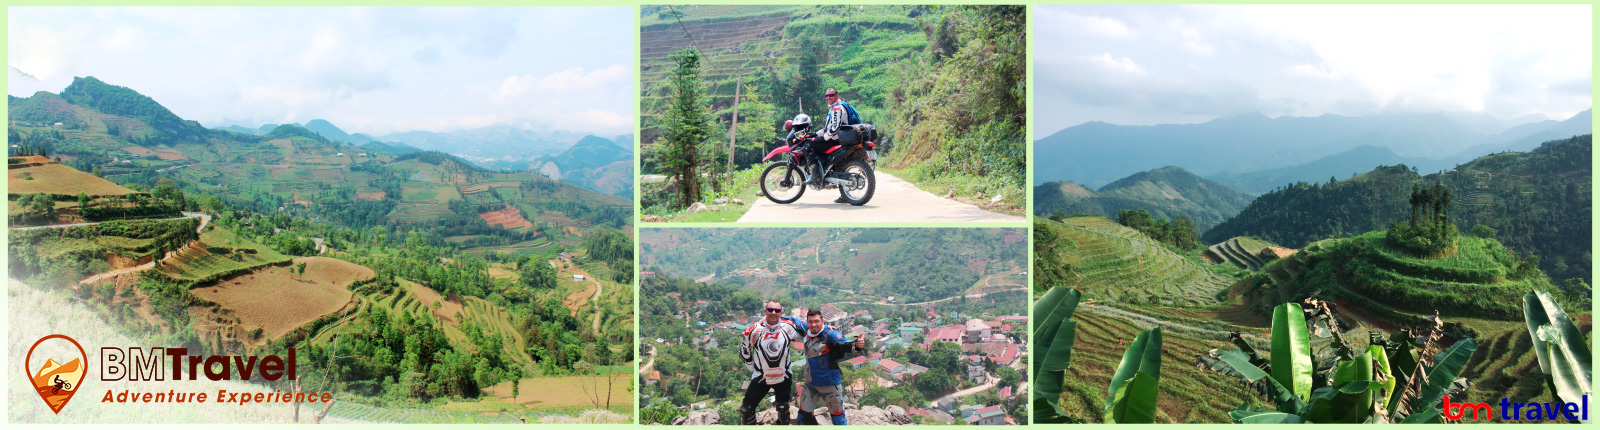 Vietnam motorbike tours via northern loop trail - 10 days, Day 4